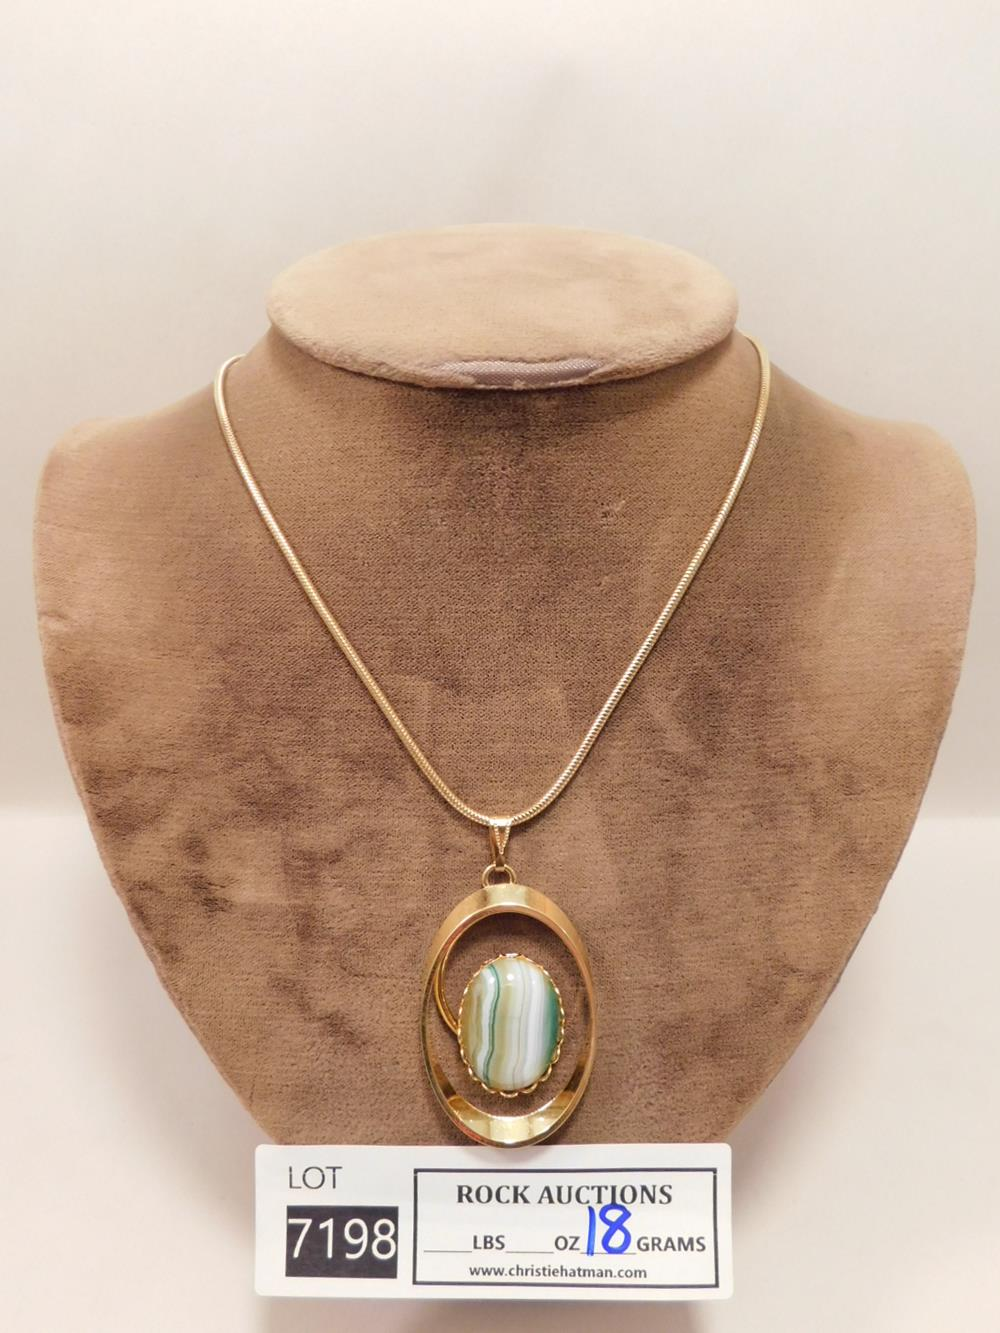 CABOCHON PENDANT AND NECKLACE ROCK STONE LAPIDARY SPECIMEN